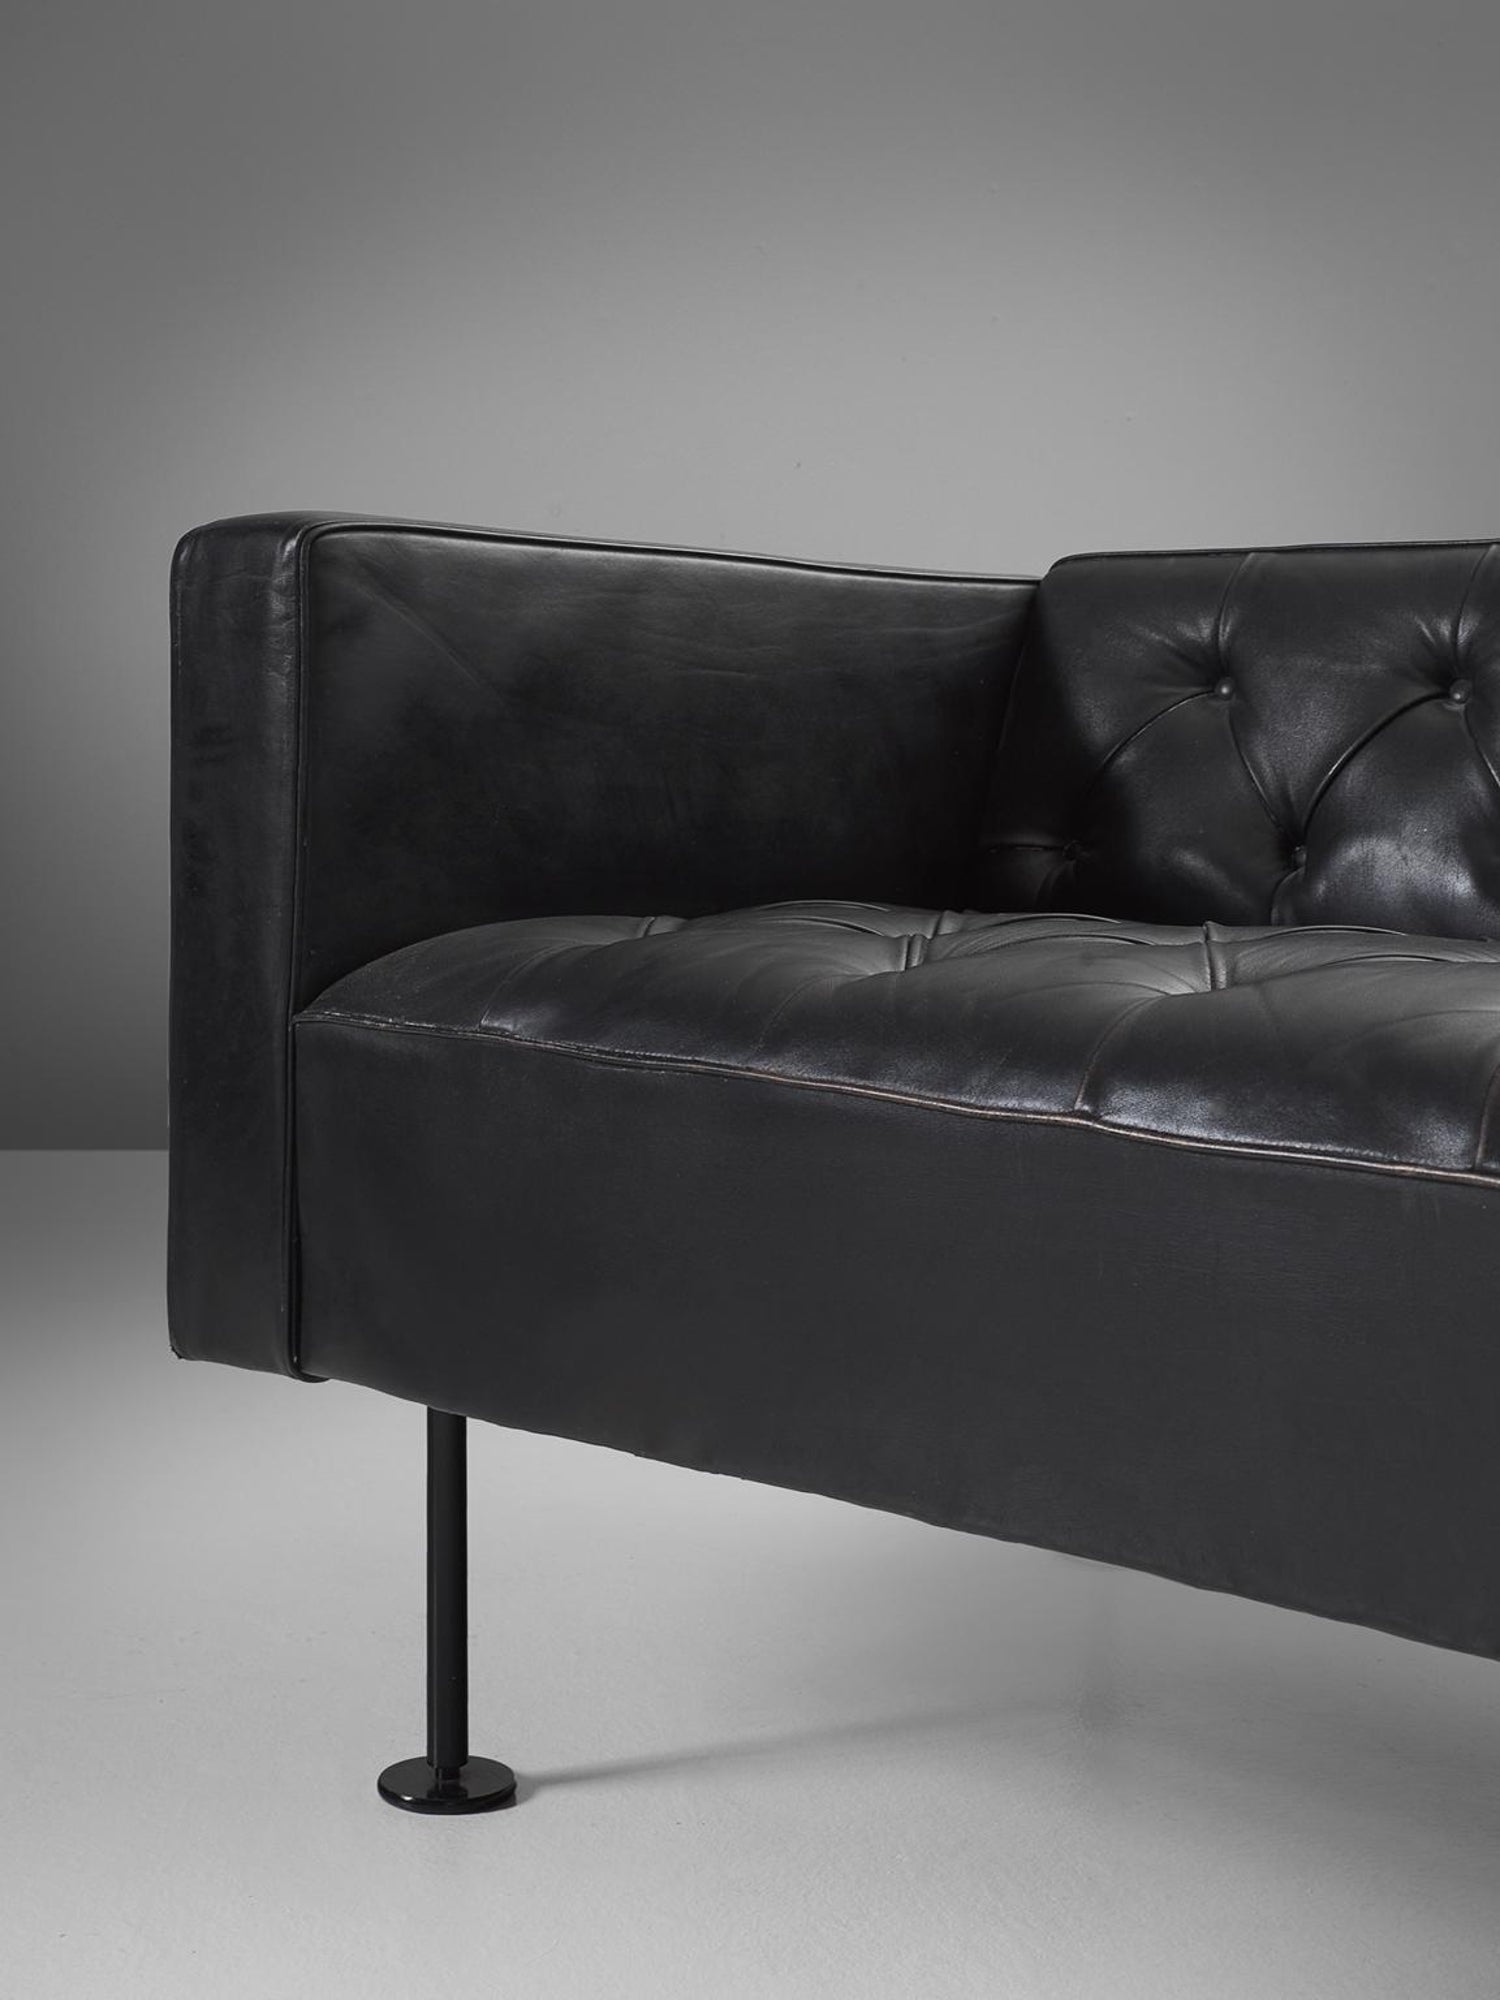 Pleasant Robert Haussmann Tufted Sofa In Black Leather Pabps2019 Chair Design Images Pabps2019Com